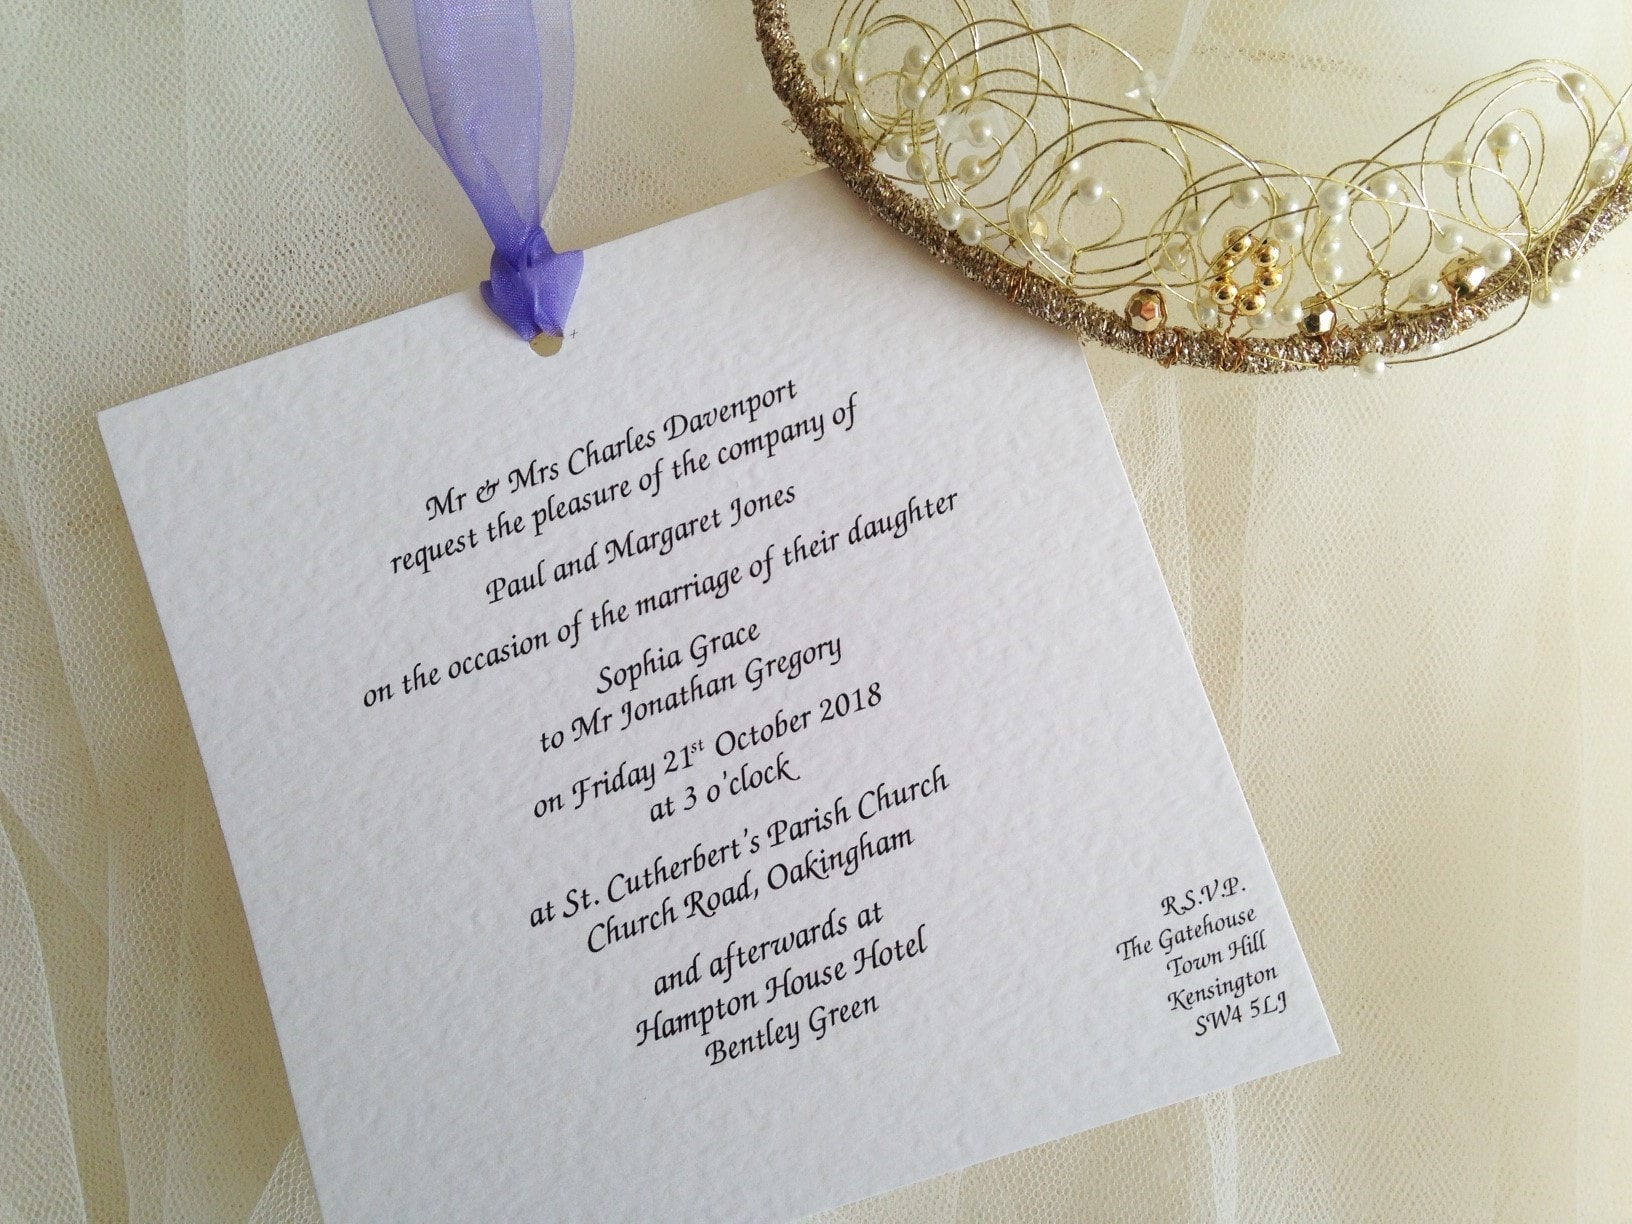 Lilac Chantilly Wedding Invitations - Daisy Chain Invites